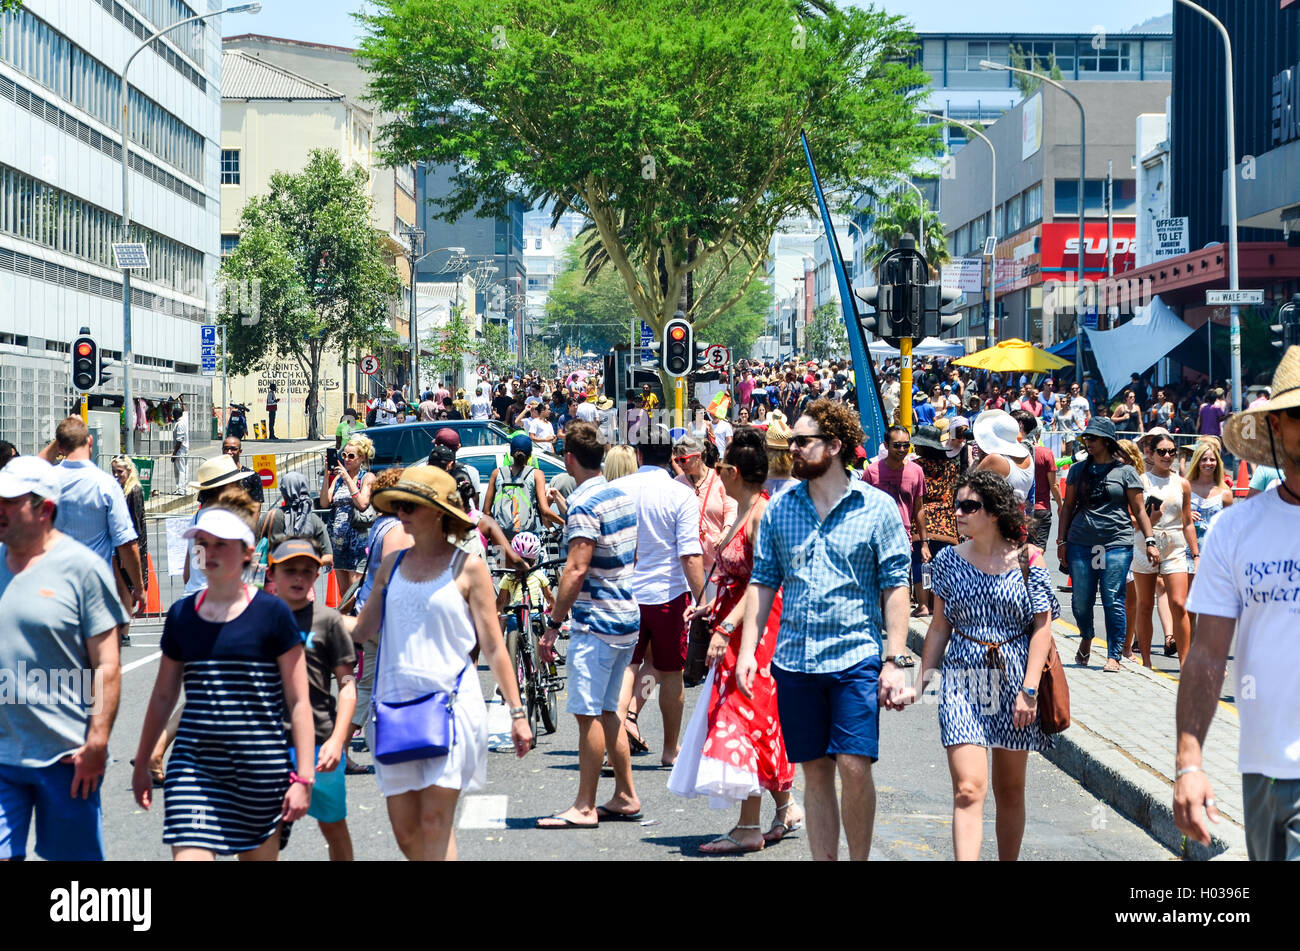 Crowd of South Africans and tourists on Bree Street, Cape Town, during the Open Streets festival - Stock Image